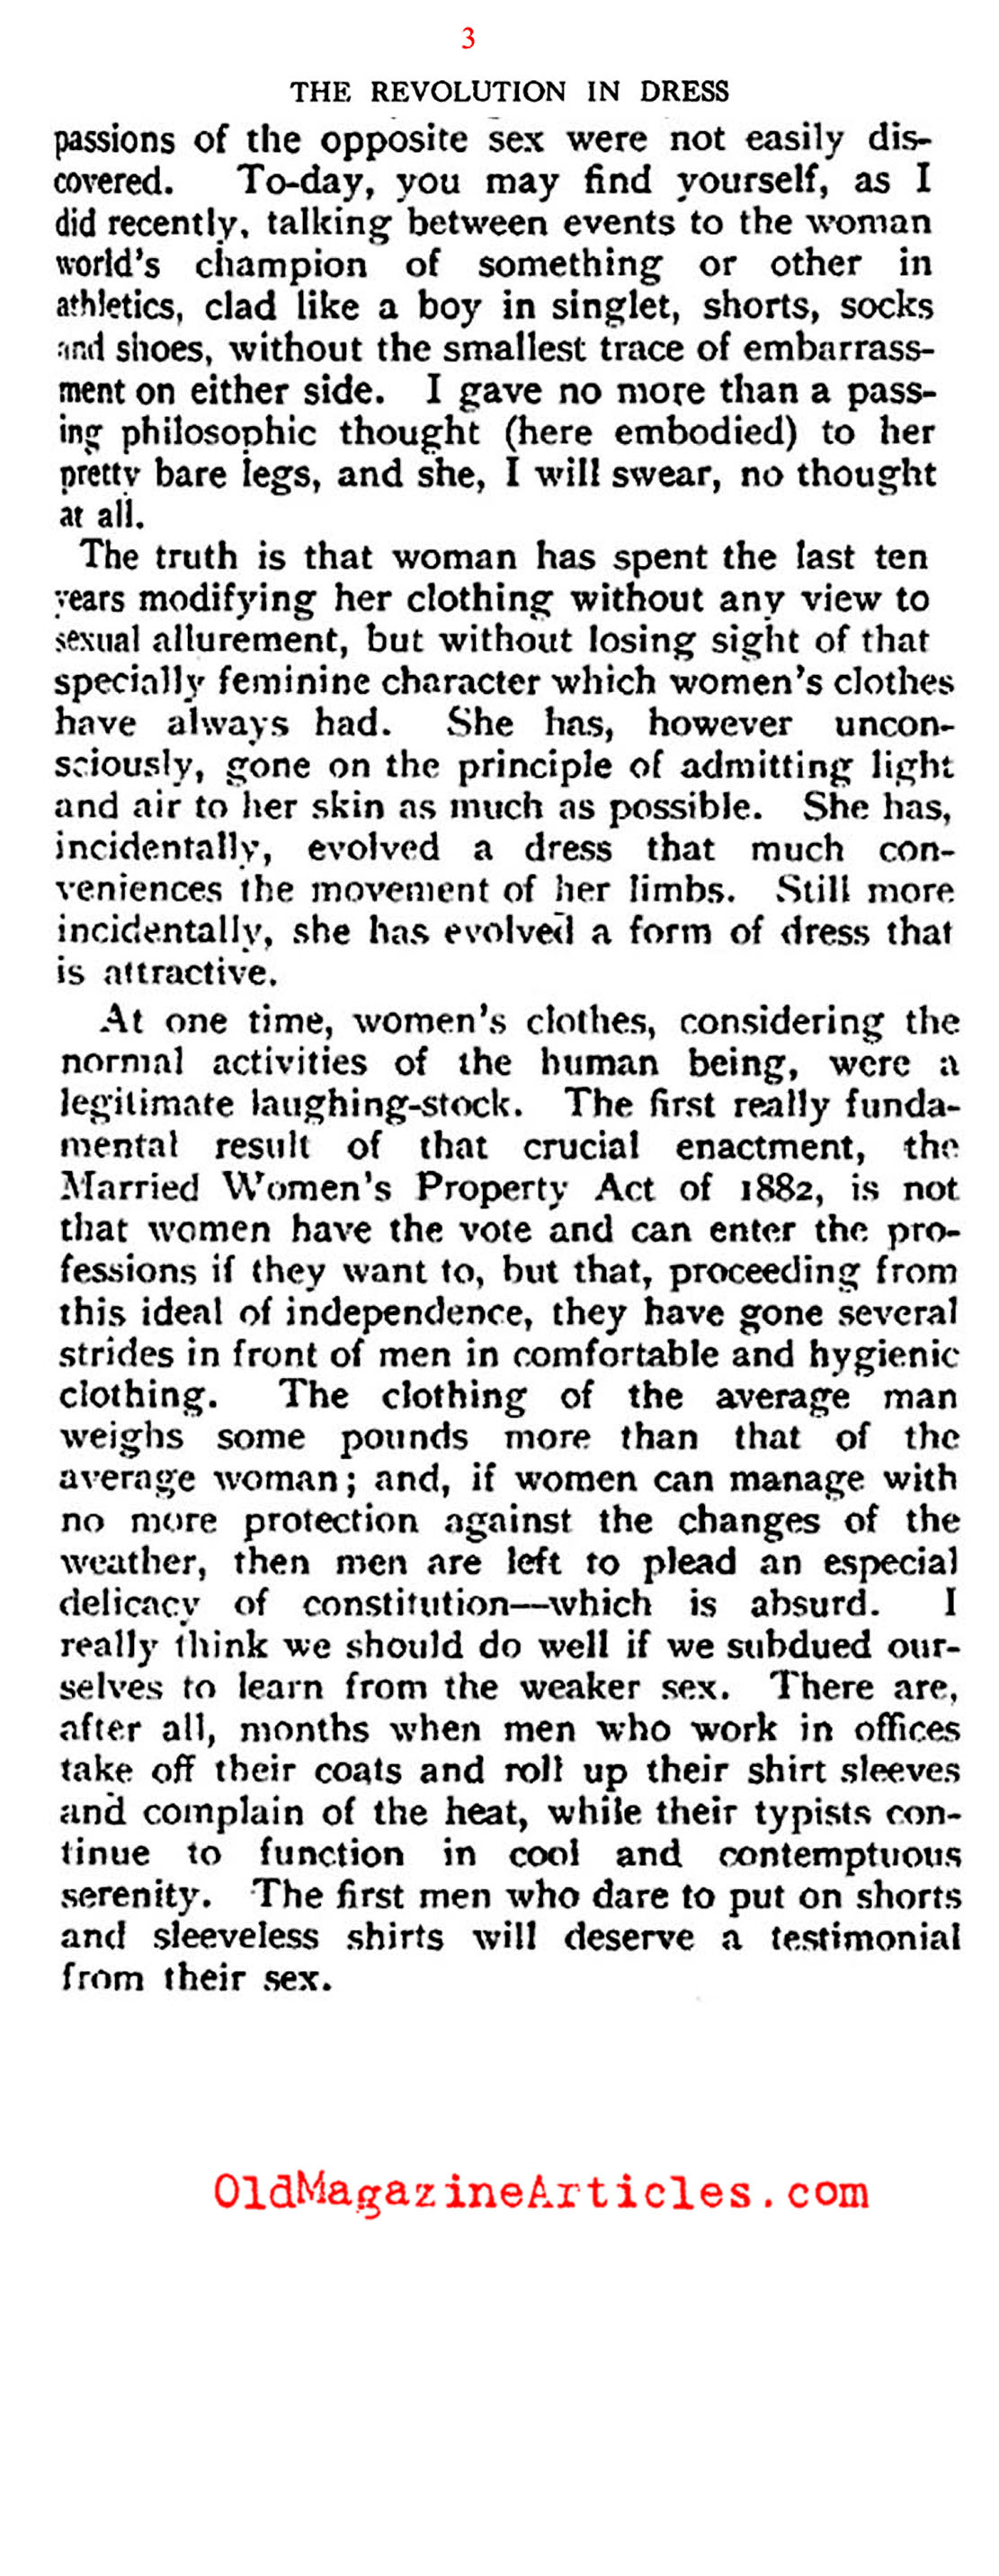 The Revolution in 1920s Fashion (Saturday Review of Literature, 1925)